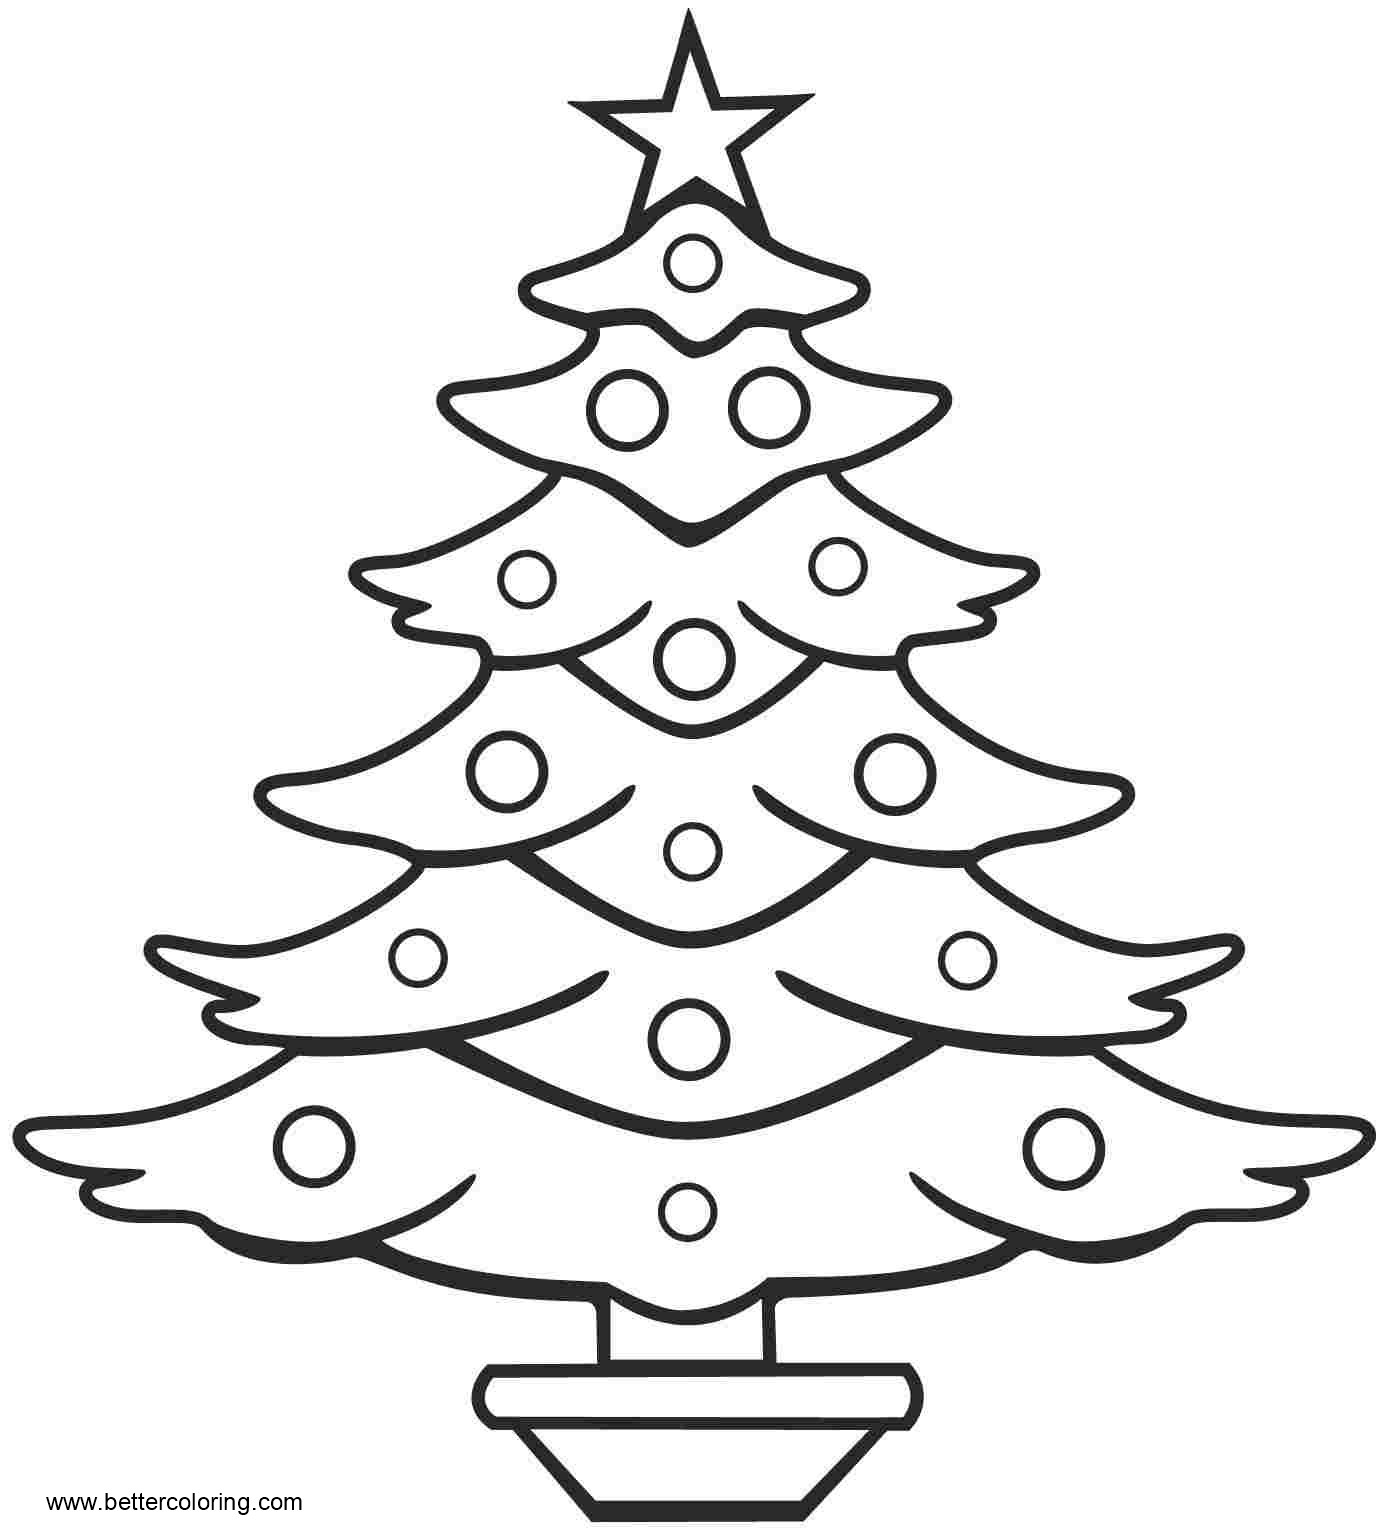 Simple Christmas Tree Coloring Pages Line Art - Free Printable ...